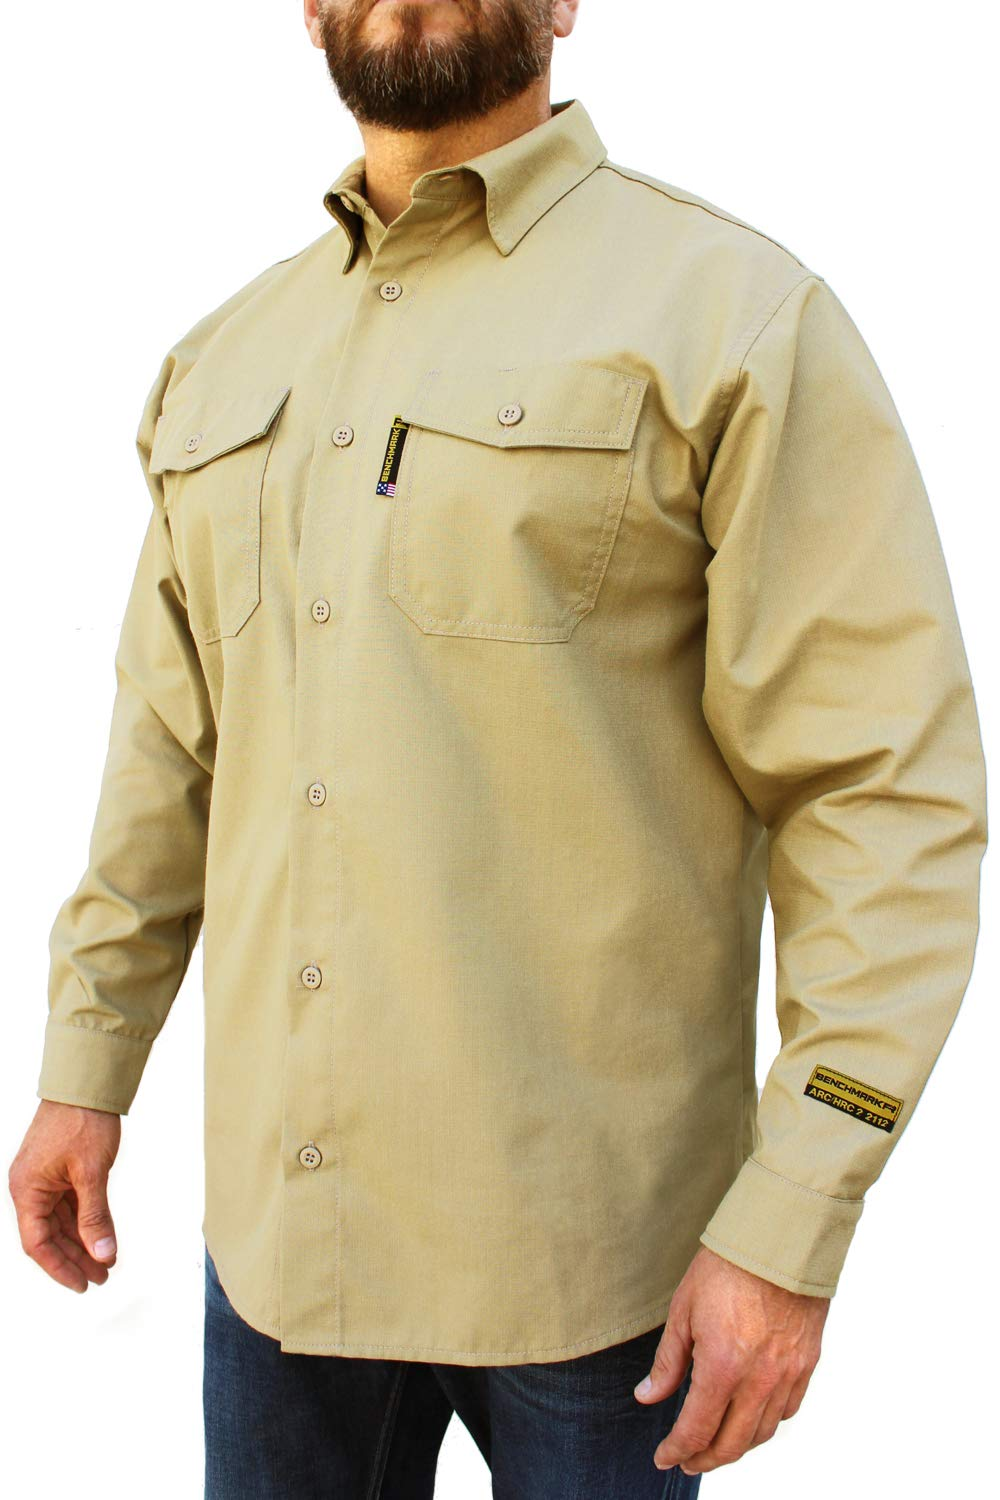 Benchmark FR Silver Bullet, 5.1 oz Ultra Lightweight FR Shirt, NPFA 2112 & CAT 2, Moisture Wicking, Men's FRC with 9 Cal rating, Made in USA, Advanced FR Materials, Beige, Large by Benchmark FR (Image #4)